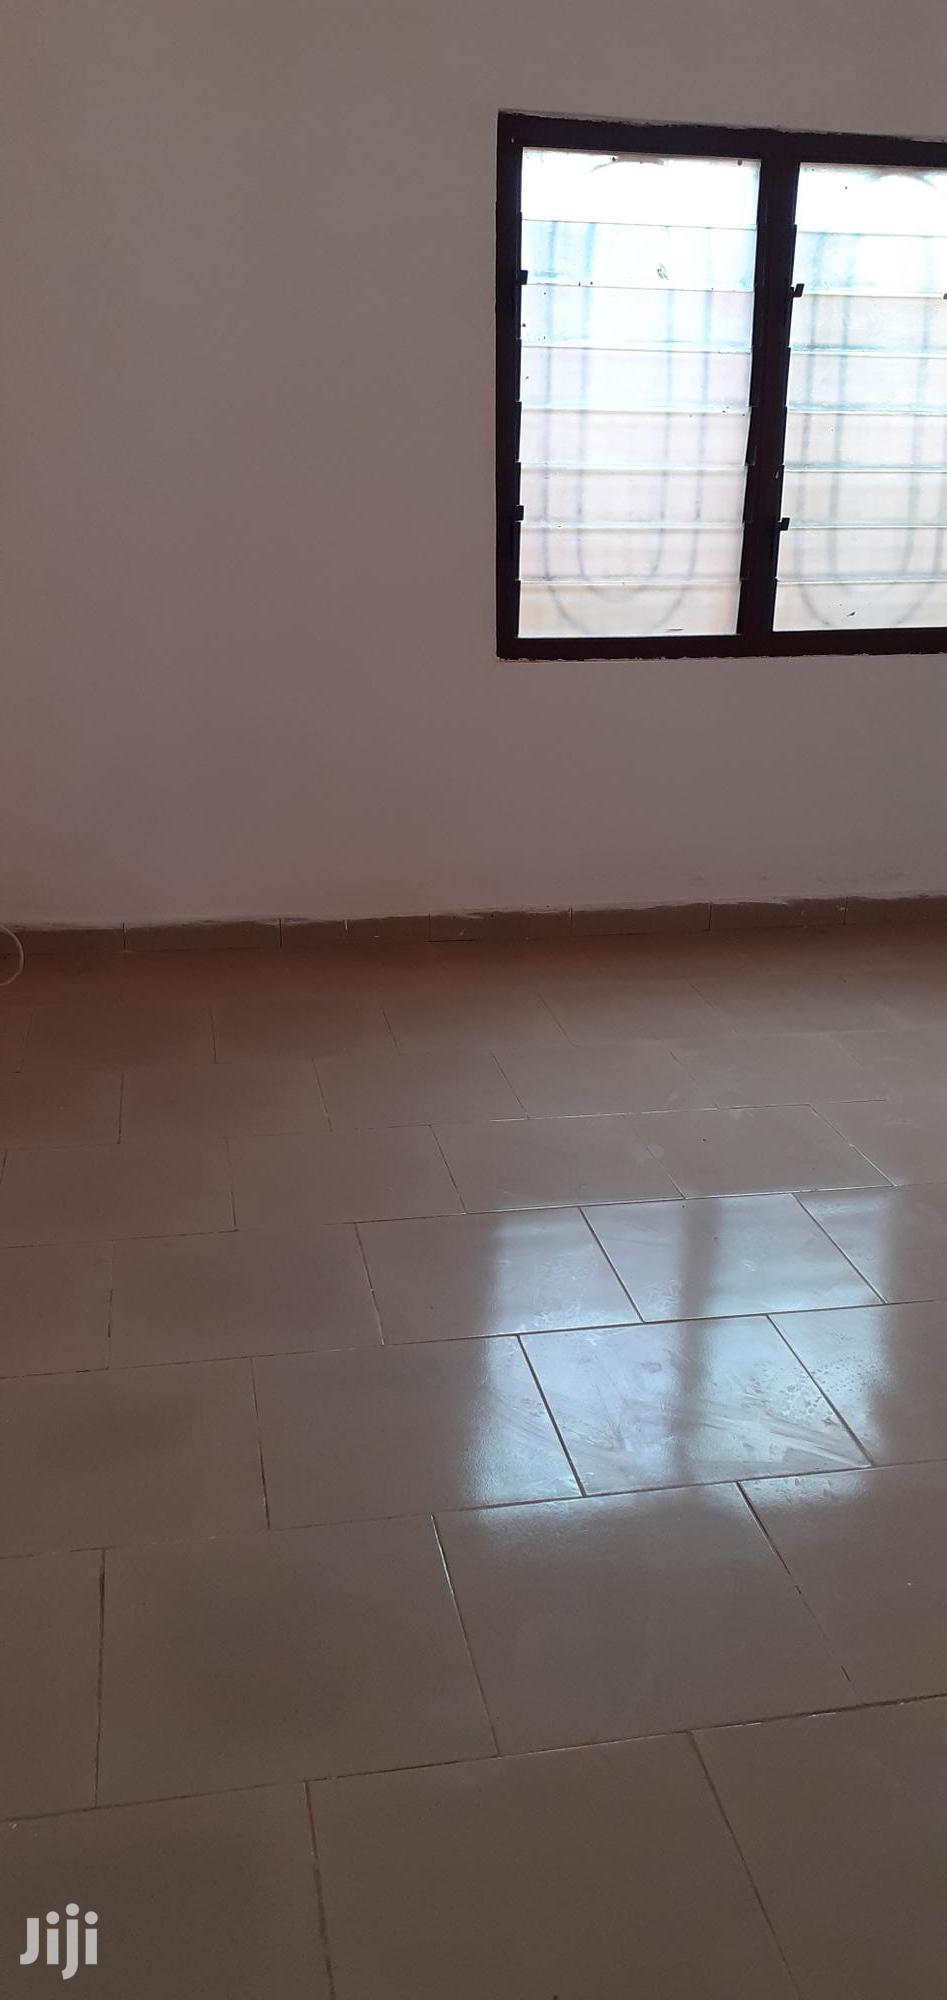 Archive: 2 Bedrooms Flat at Gyinyase Remysear